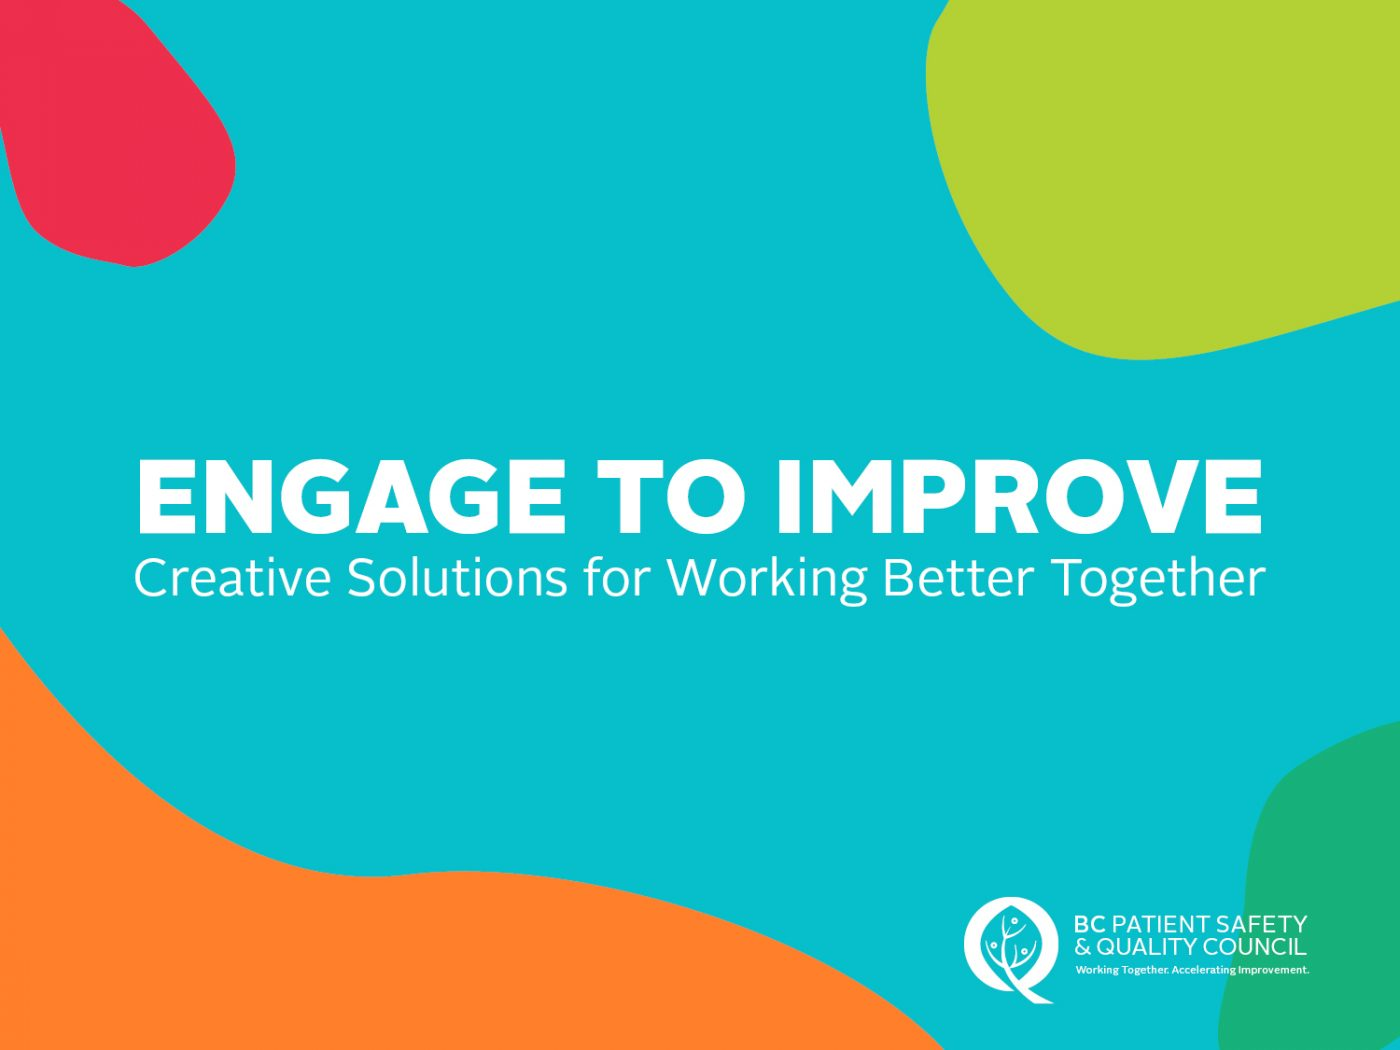 Engage to Improve